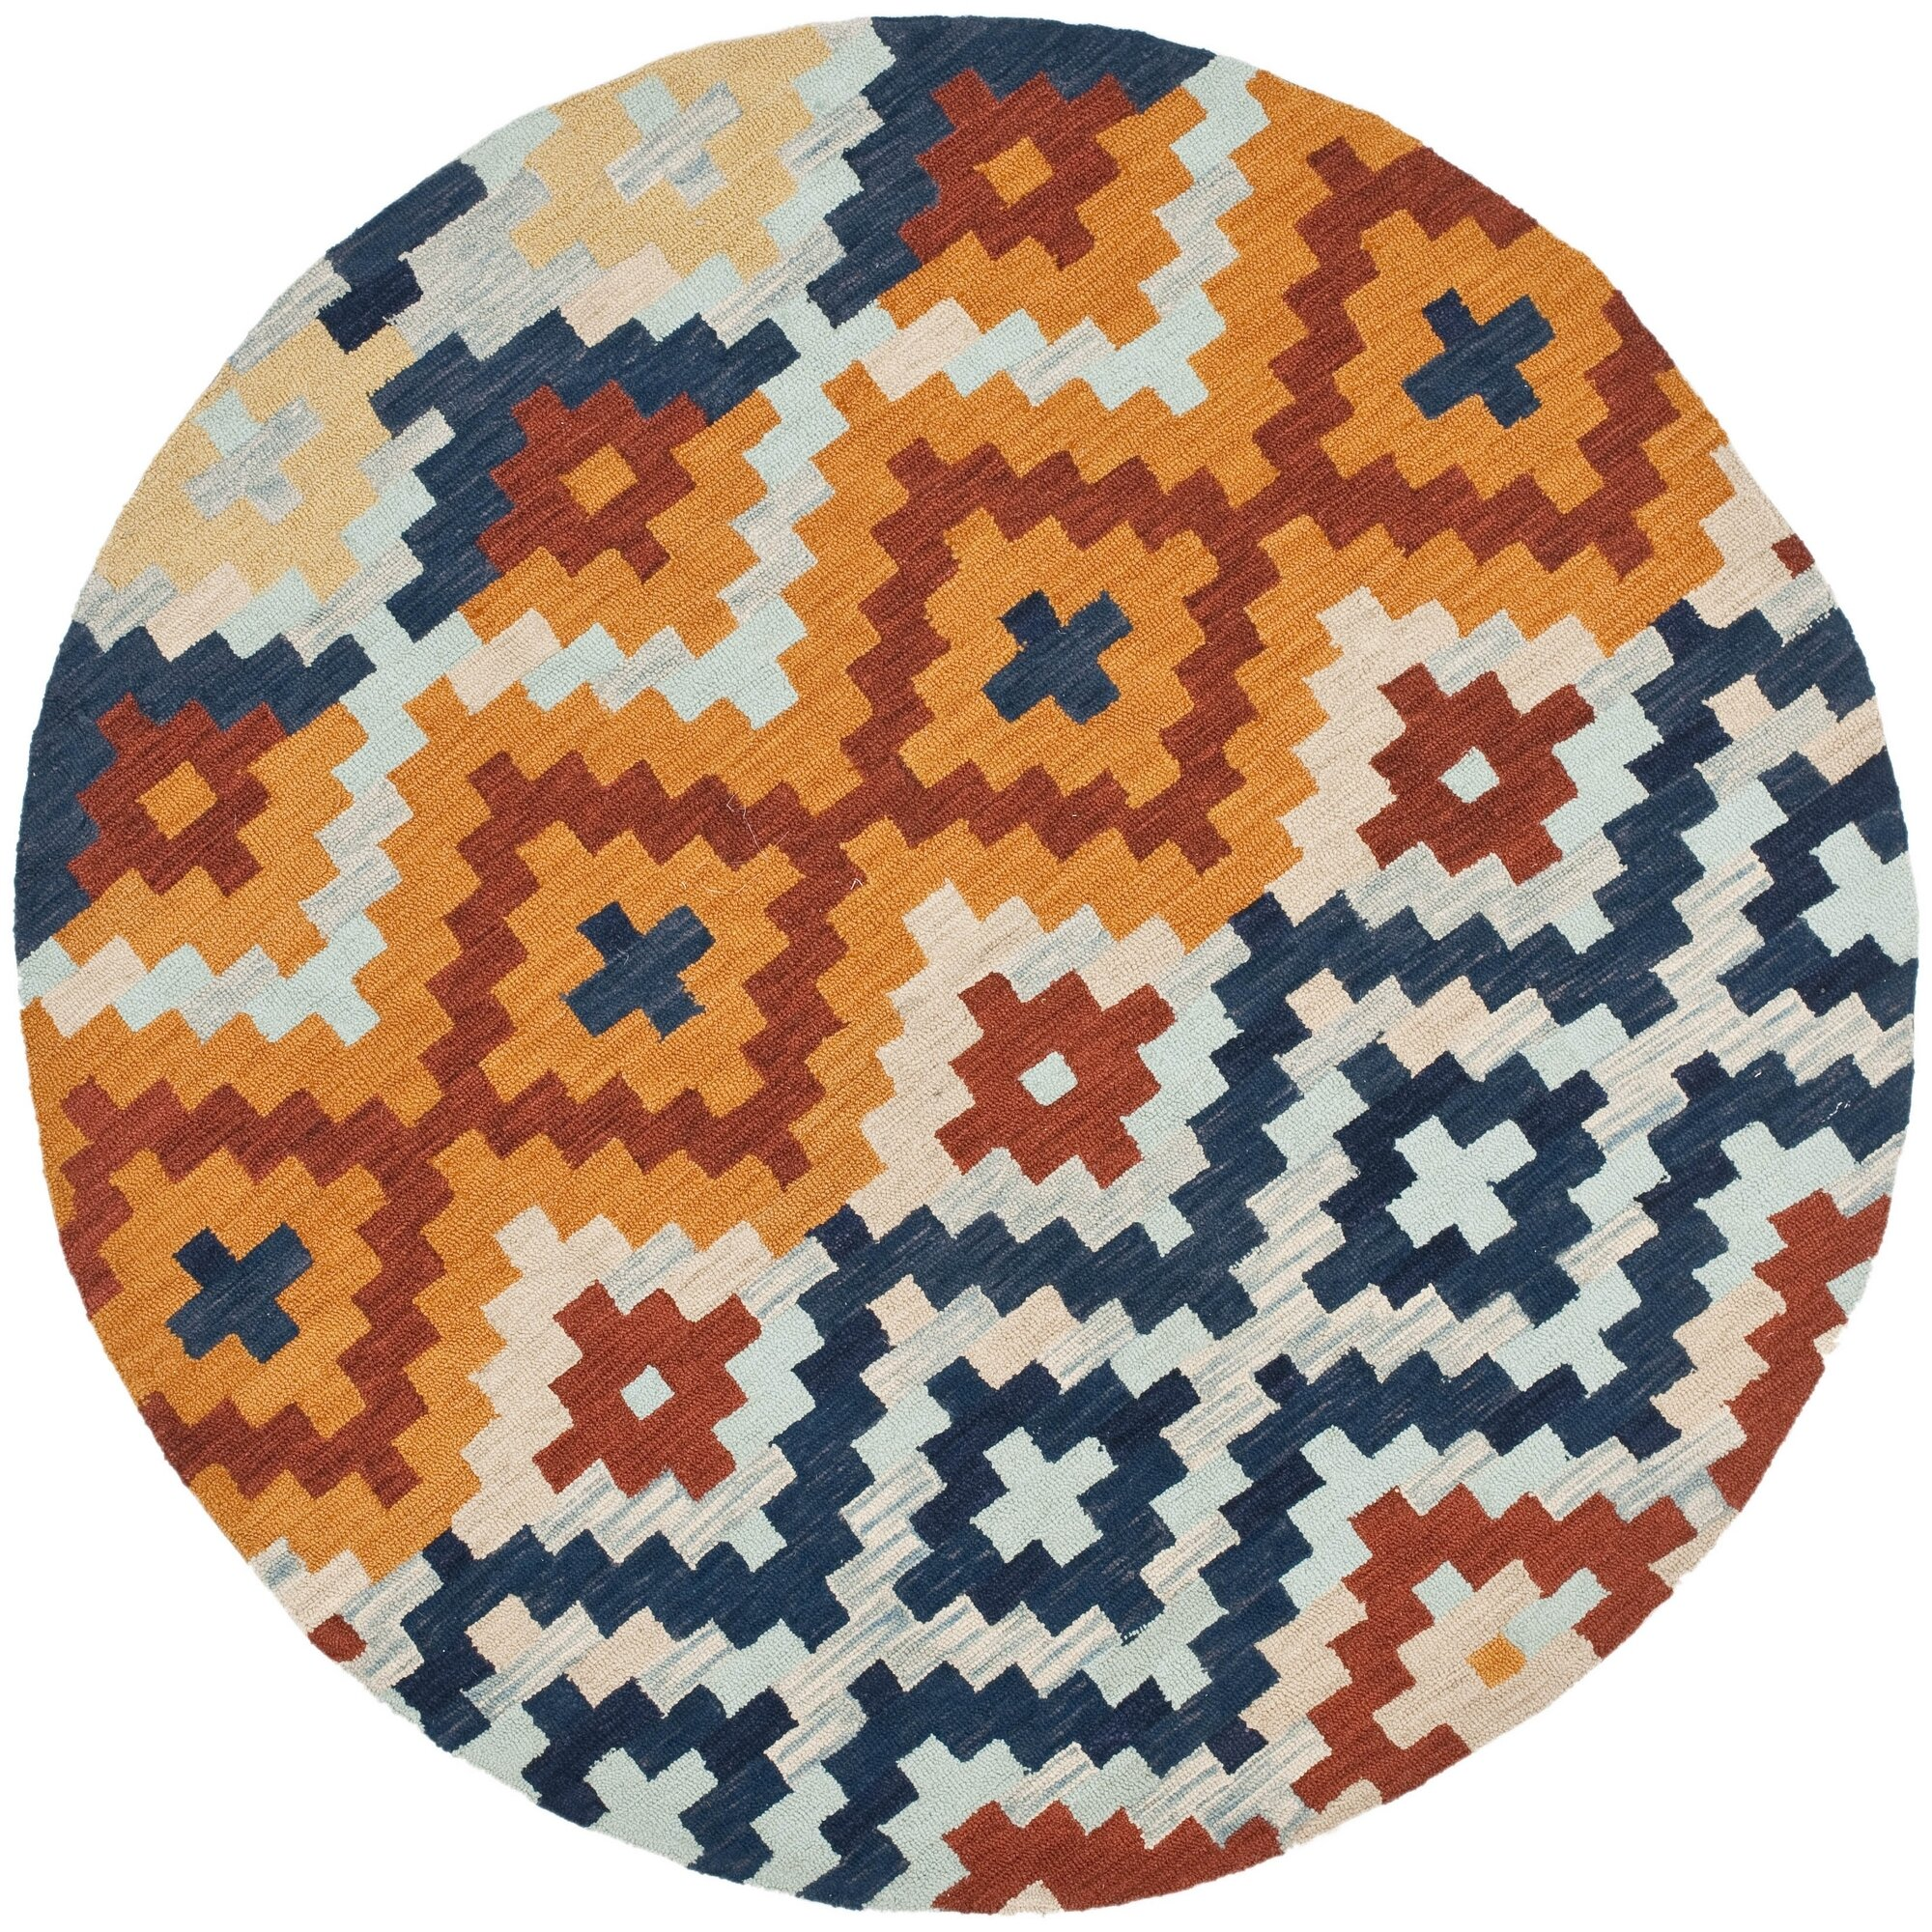 Checked Area Rugs: Pitkin Checked Area Rug & Reviews